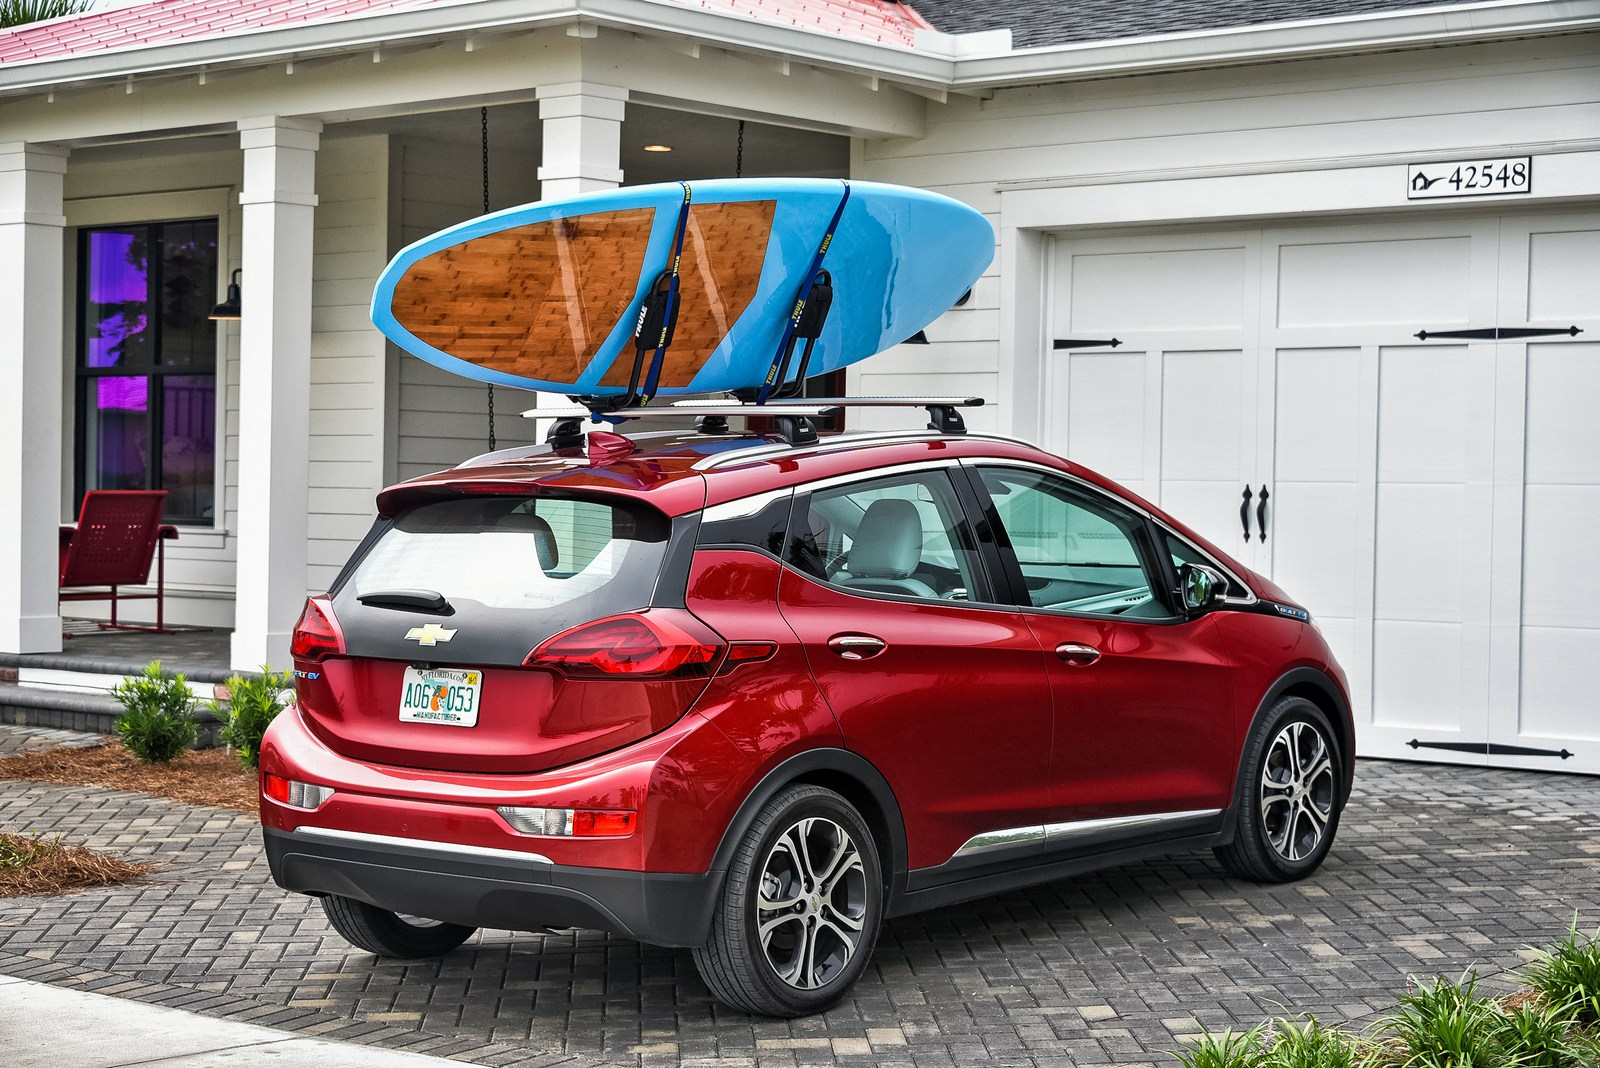 Chevrolet Bolt Finally Starts To Outsell The Volt